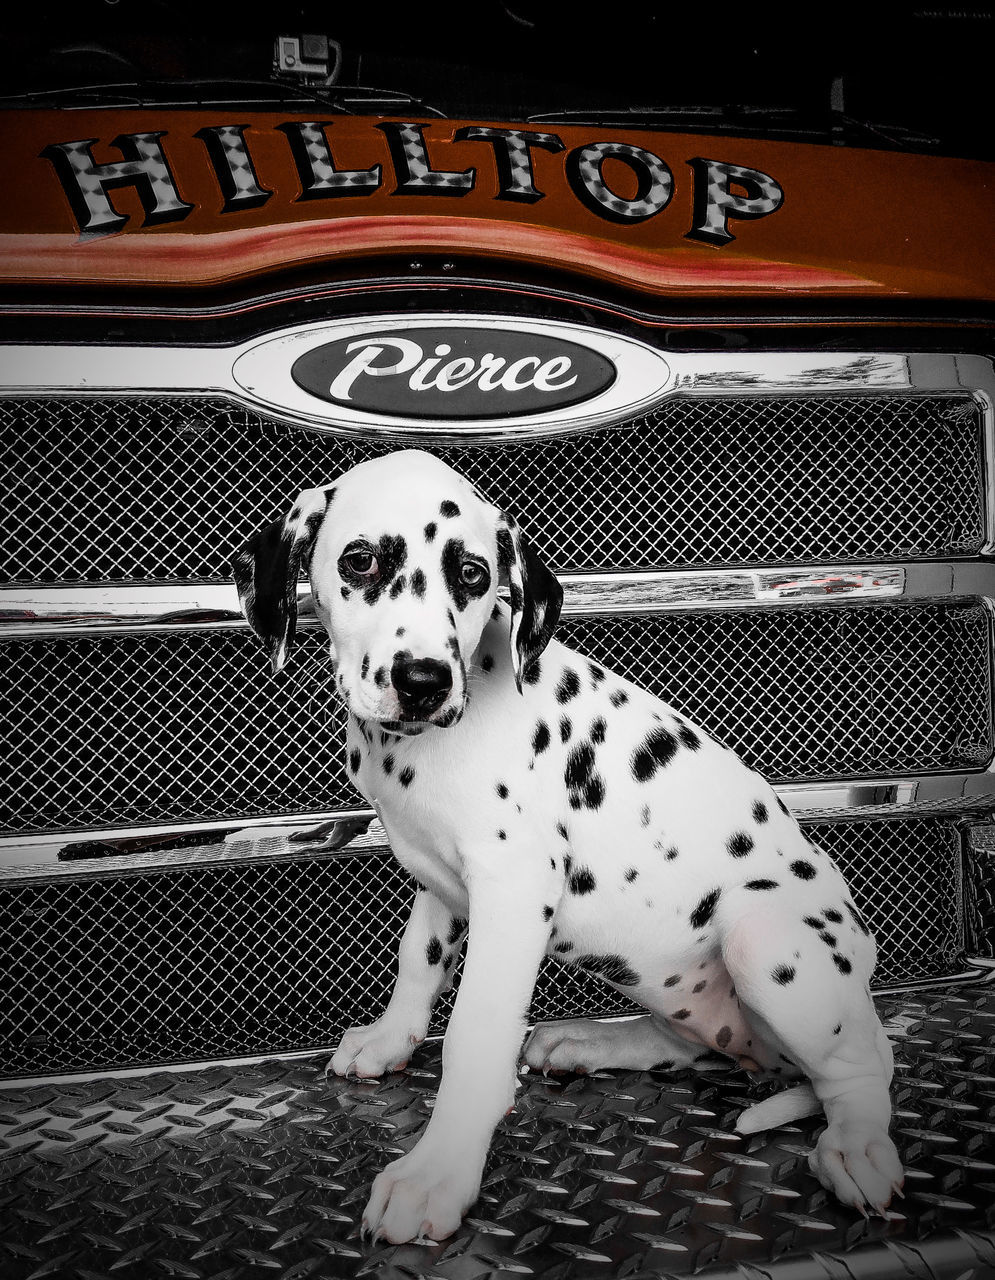 dalmatian dog, pets, dog, one animal, domestic animals, animal themes, mammal, day, no people, outdoors